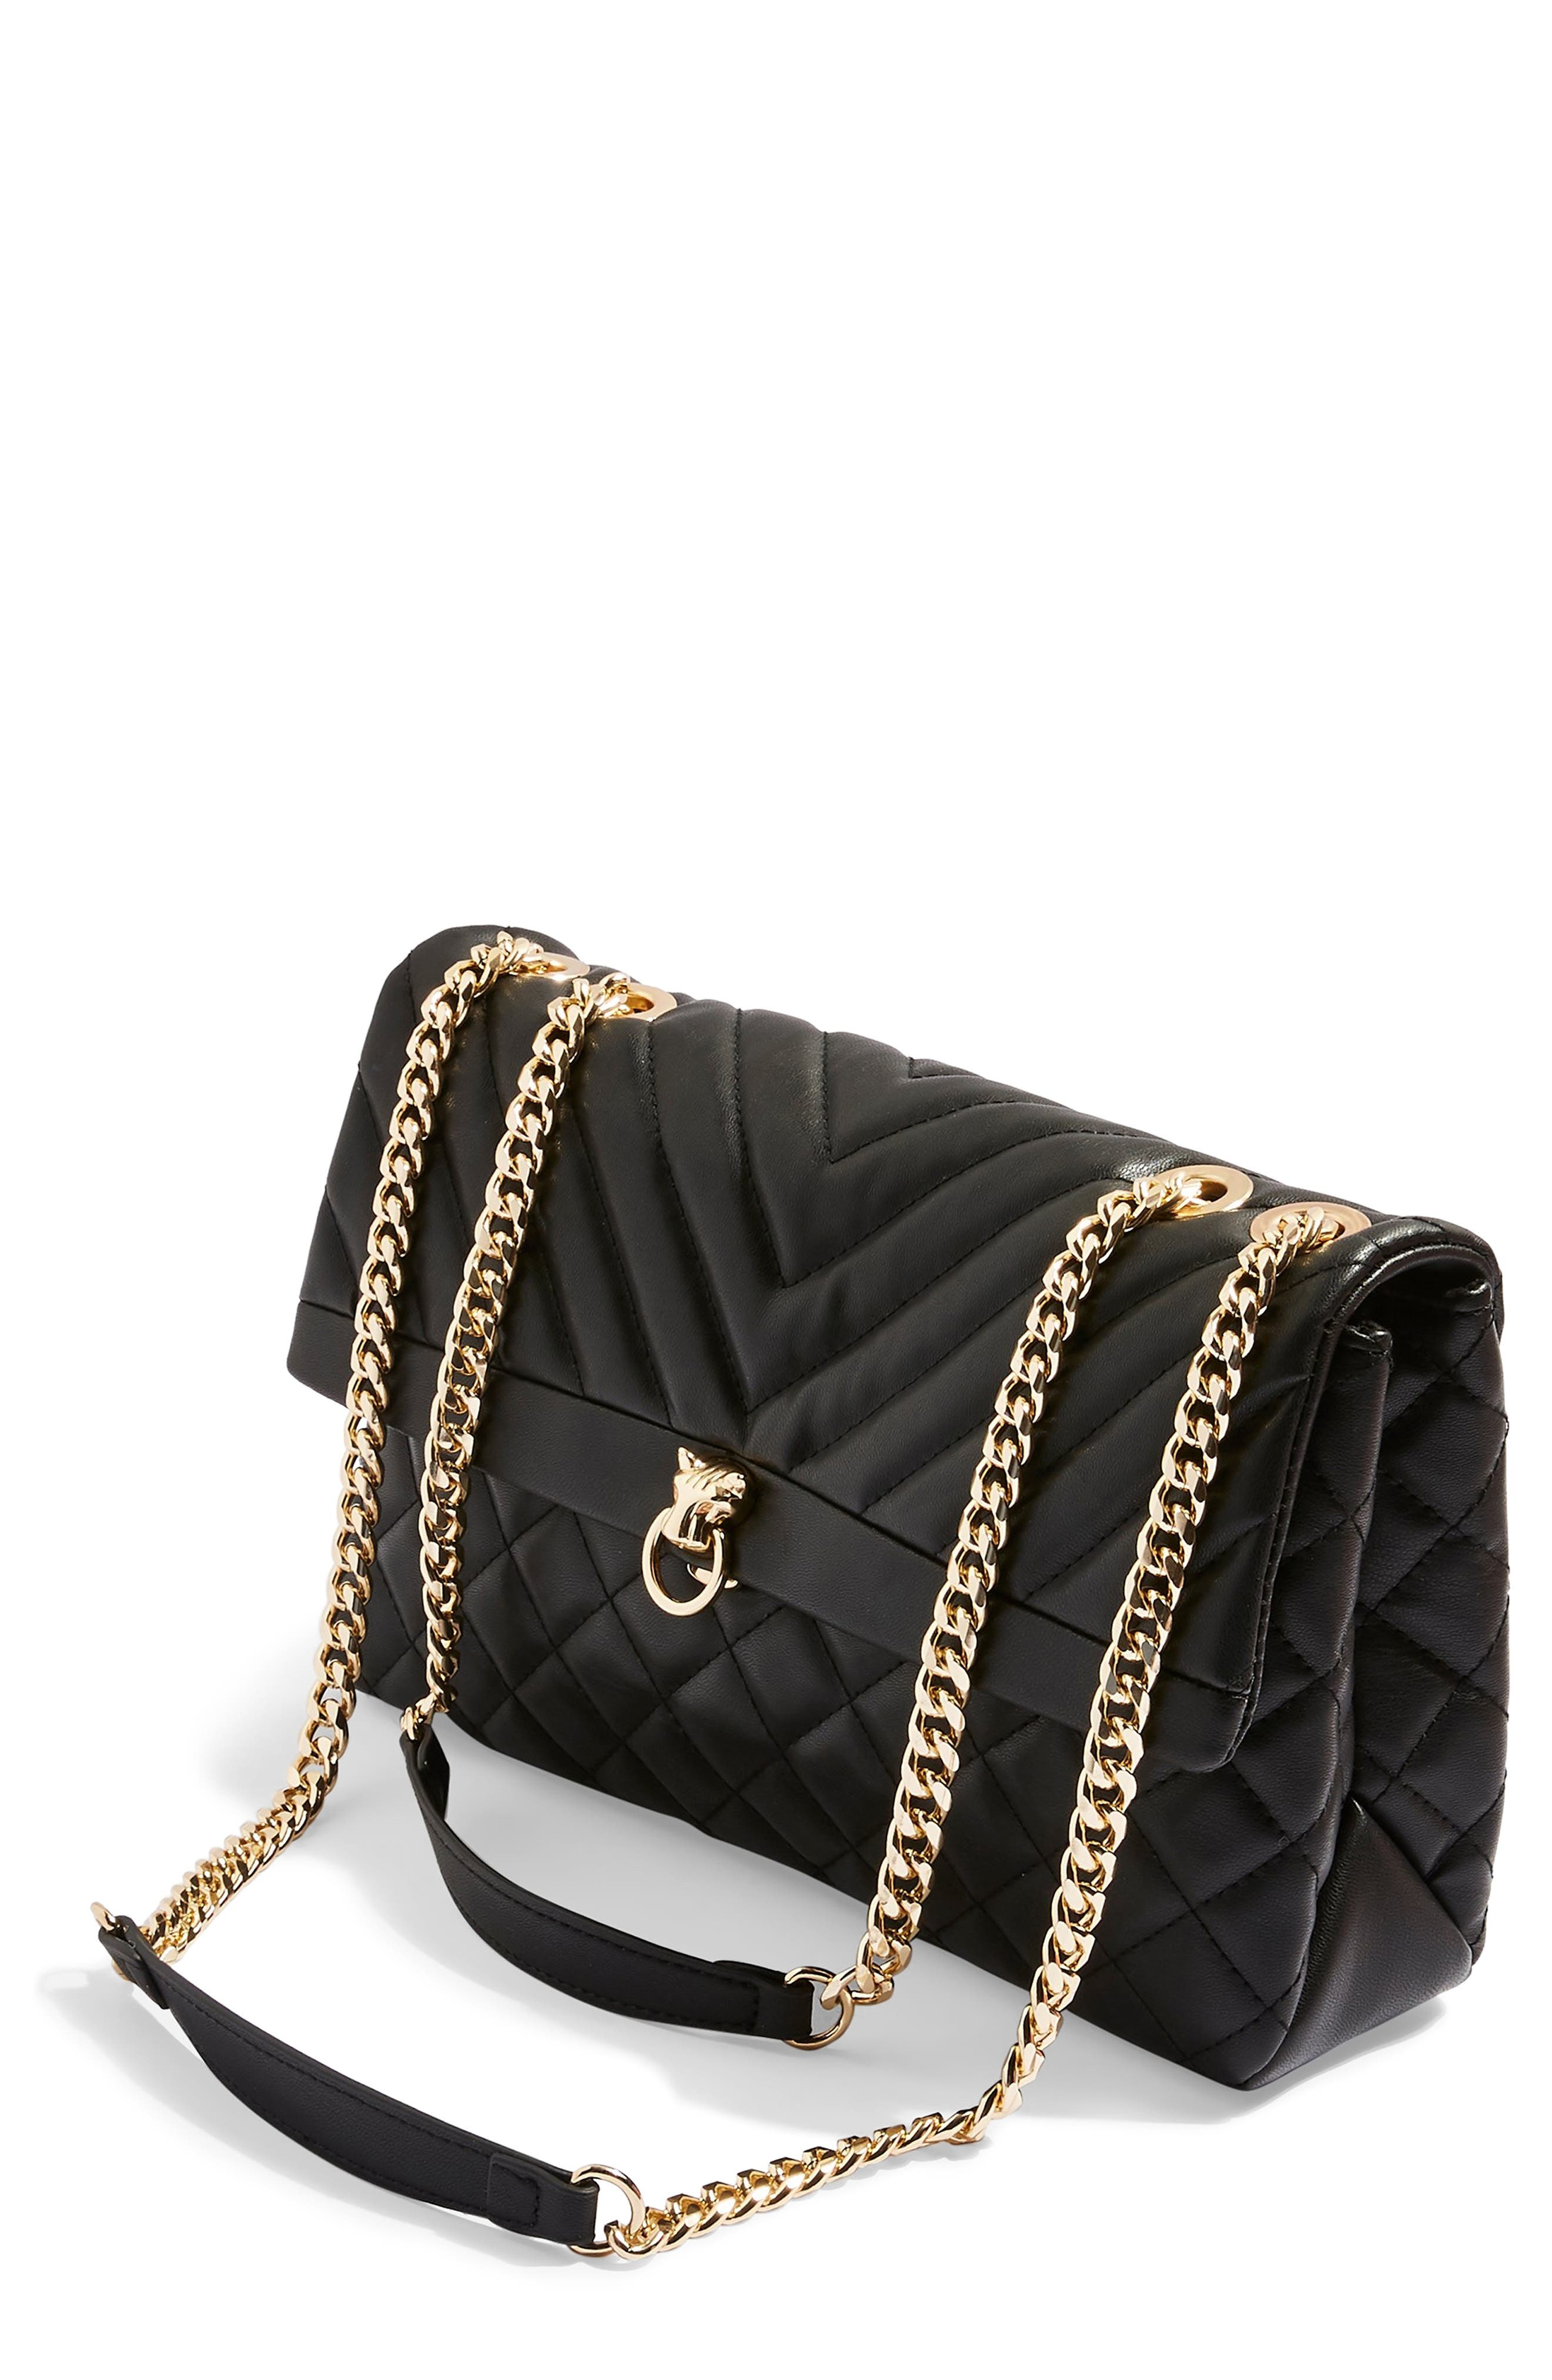 TOPSHOP, Panther Quilted Faux Leather Shoulder Bag, Main thumbnail 1, color, 001